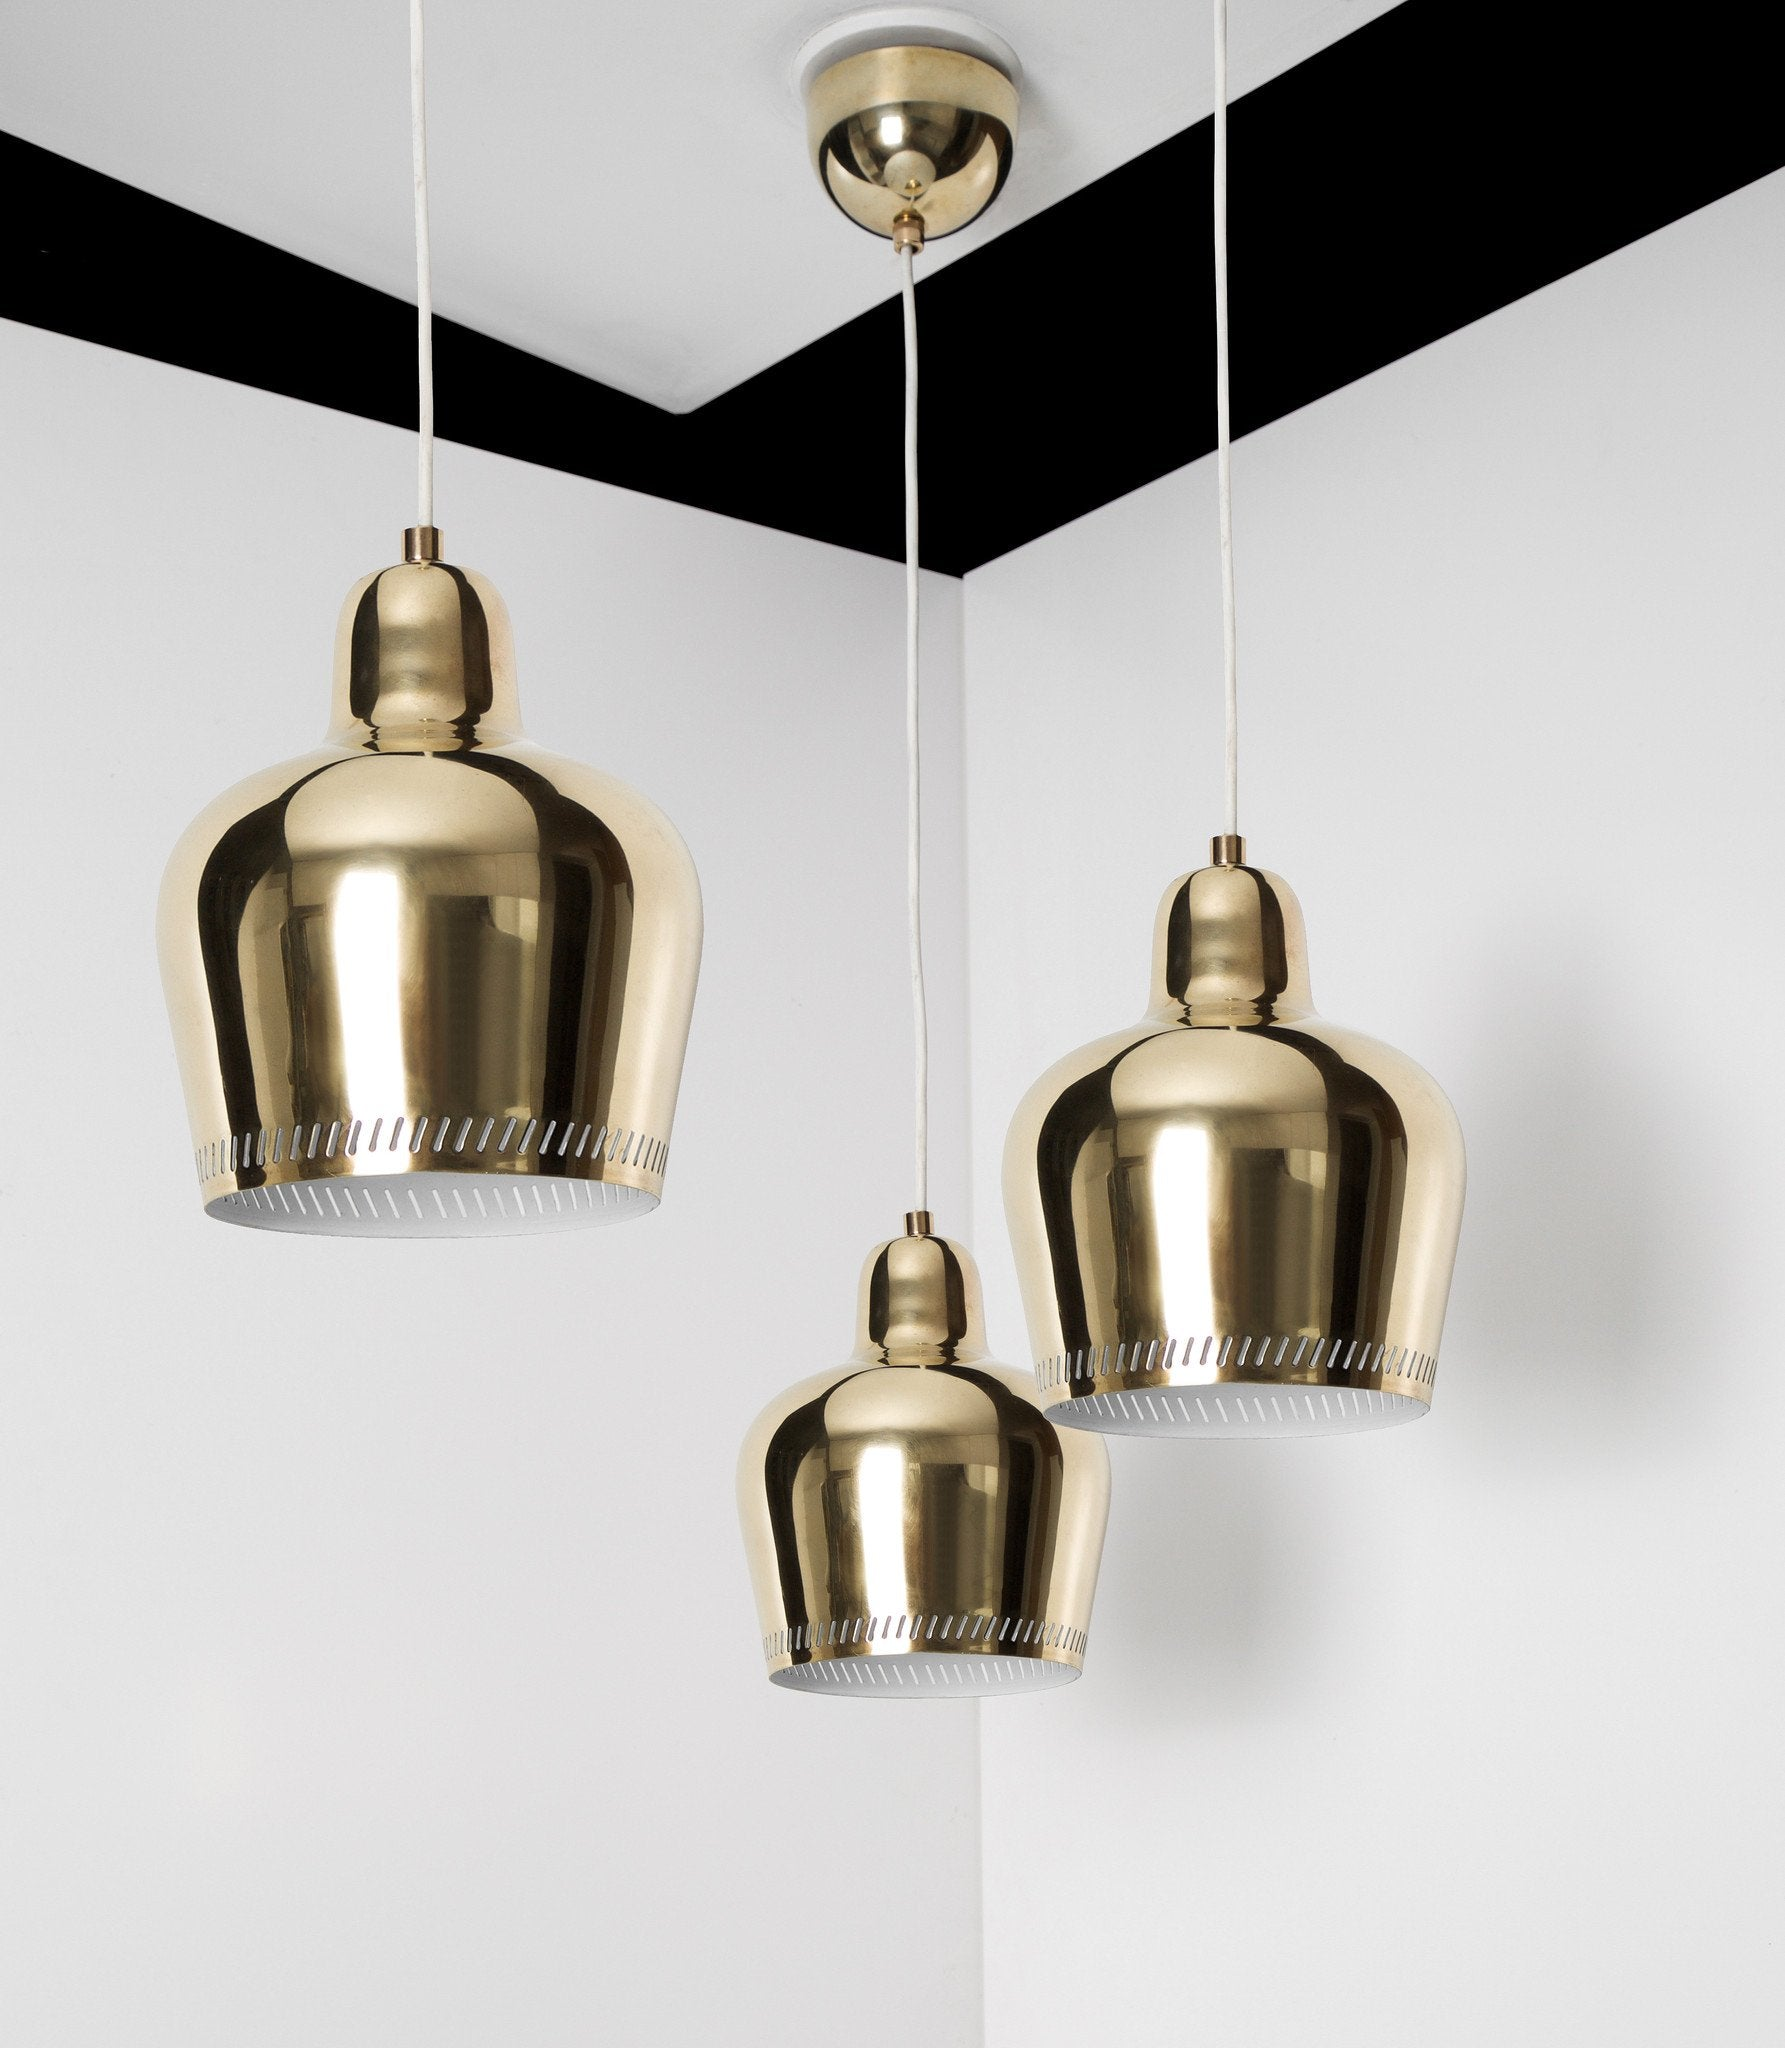 Paavo Tynell and Alvar Aalto Set of Three Rare Golden Bell Pendants 1940s